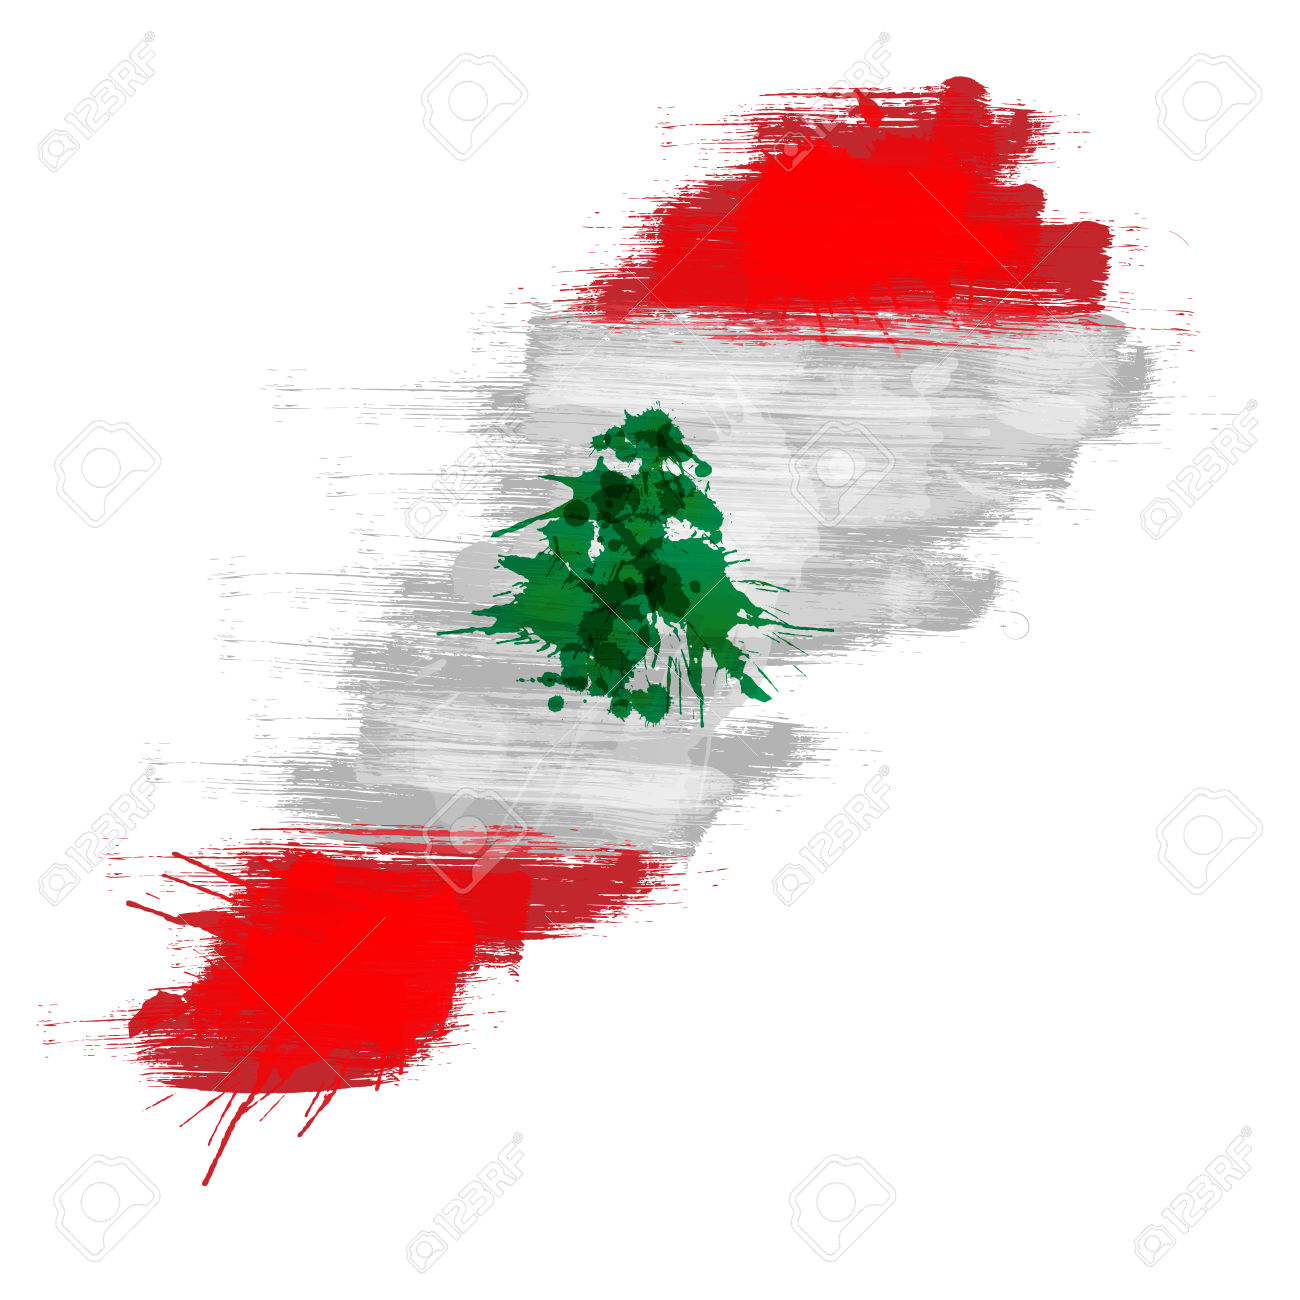 467 Lebanese Map Stock Vector Illustration And Royalty Free.